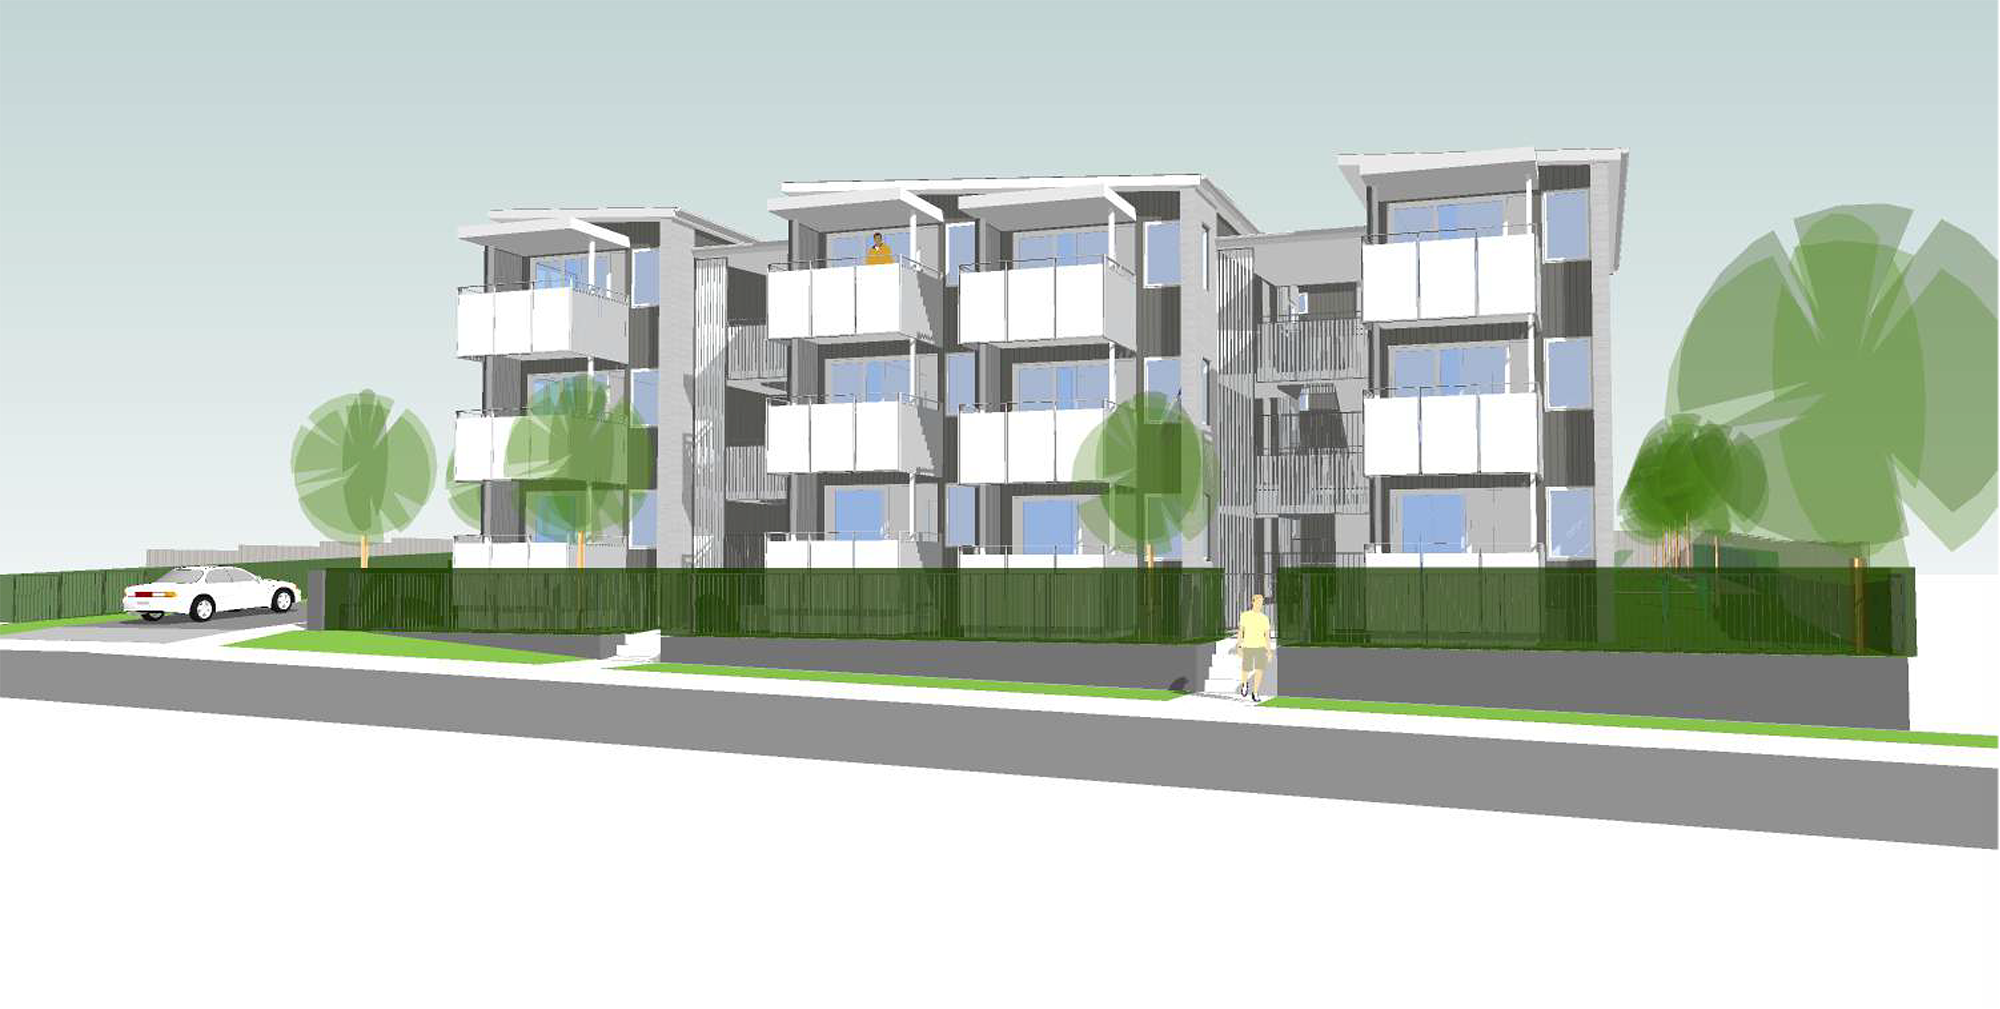 Dominion Rd Render 1